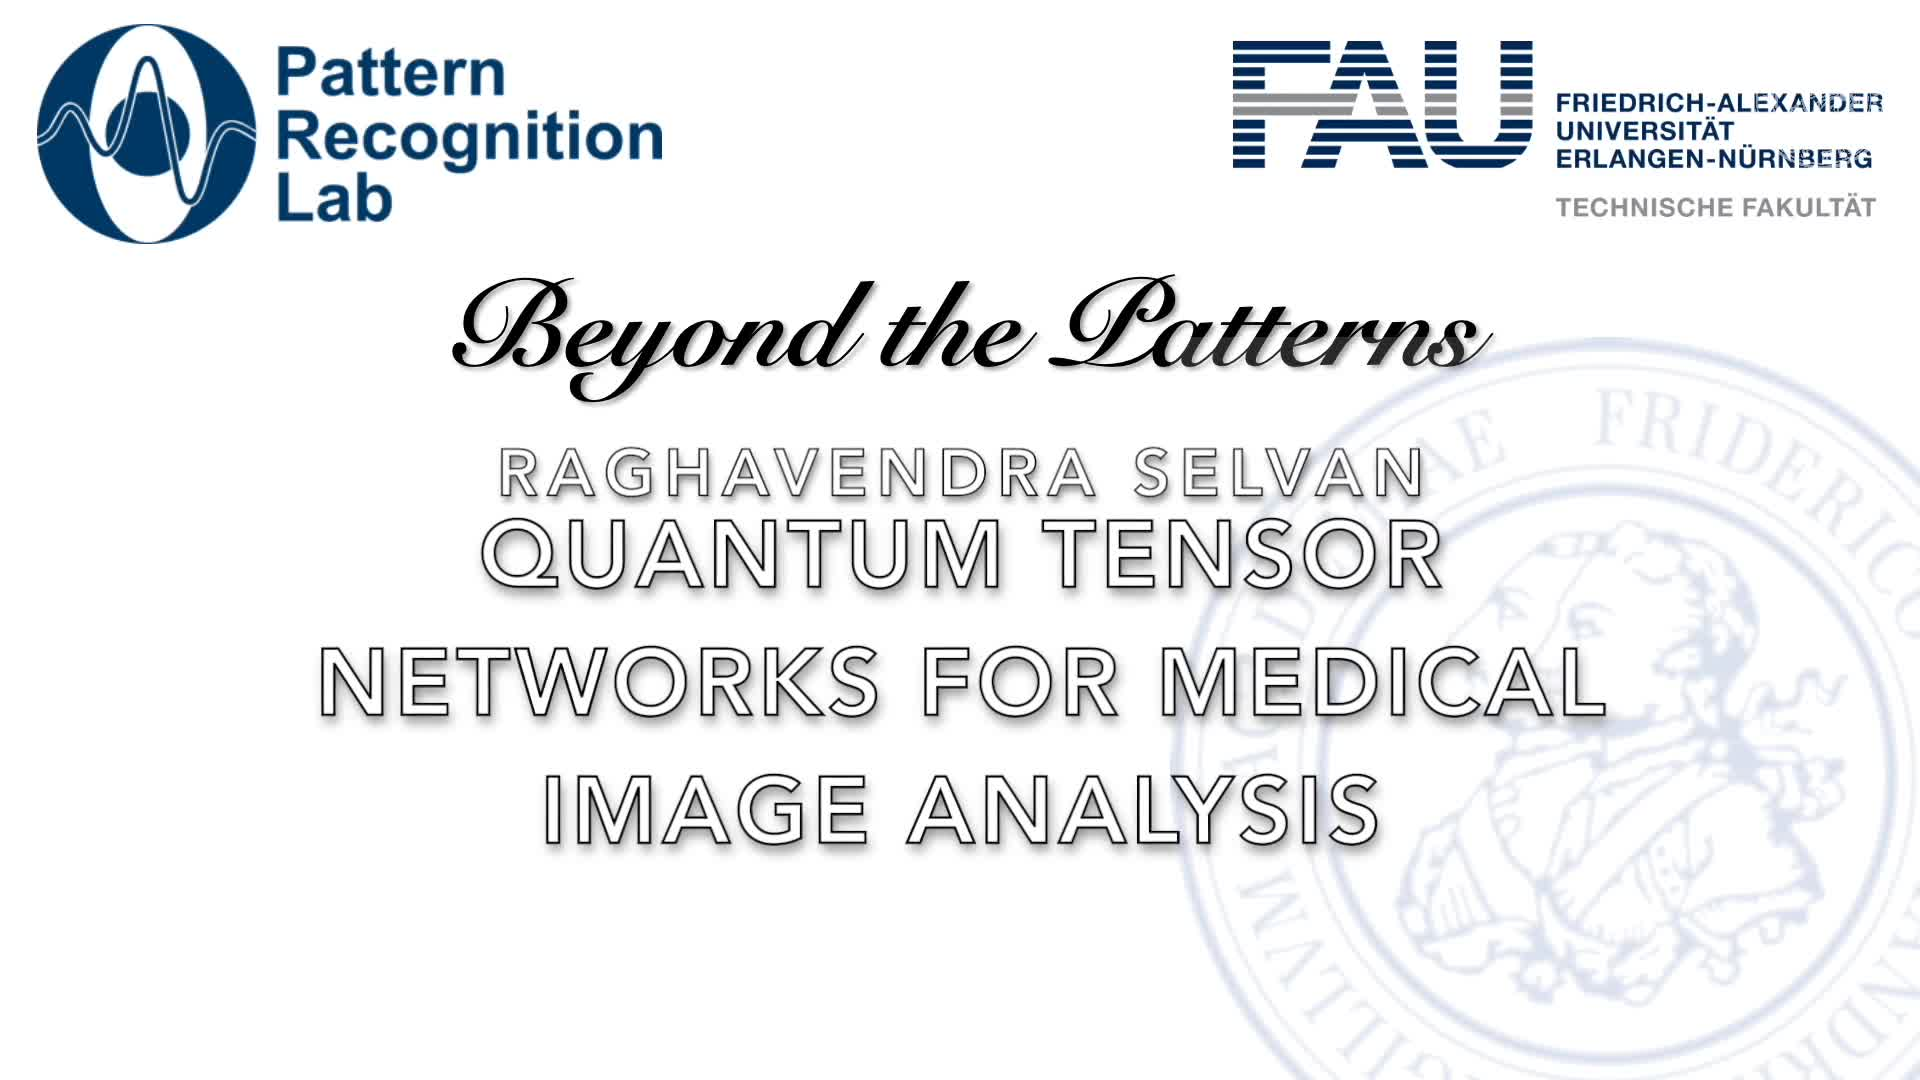 Beyond the Patterns - Raghavendra Selvan: Quantum Tensor Networks for Medical Image Analysis preview image